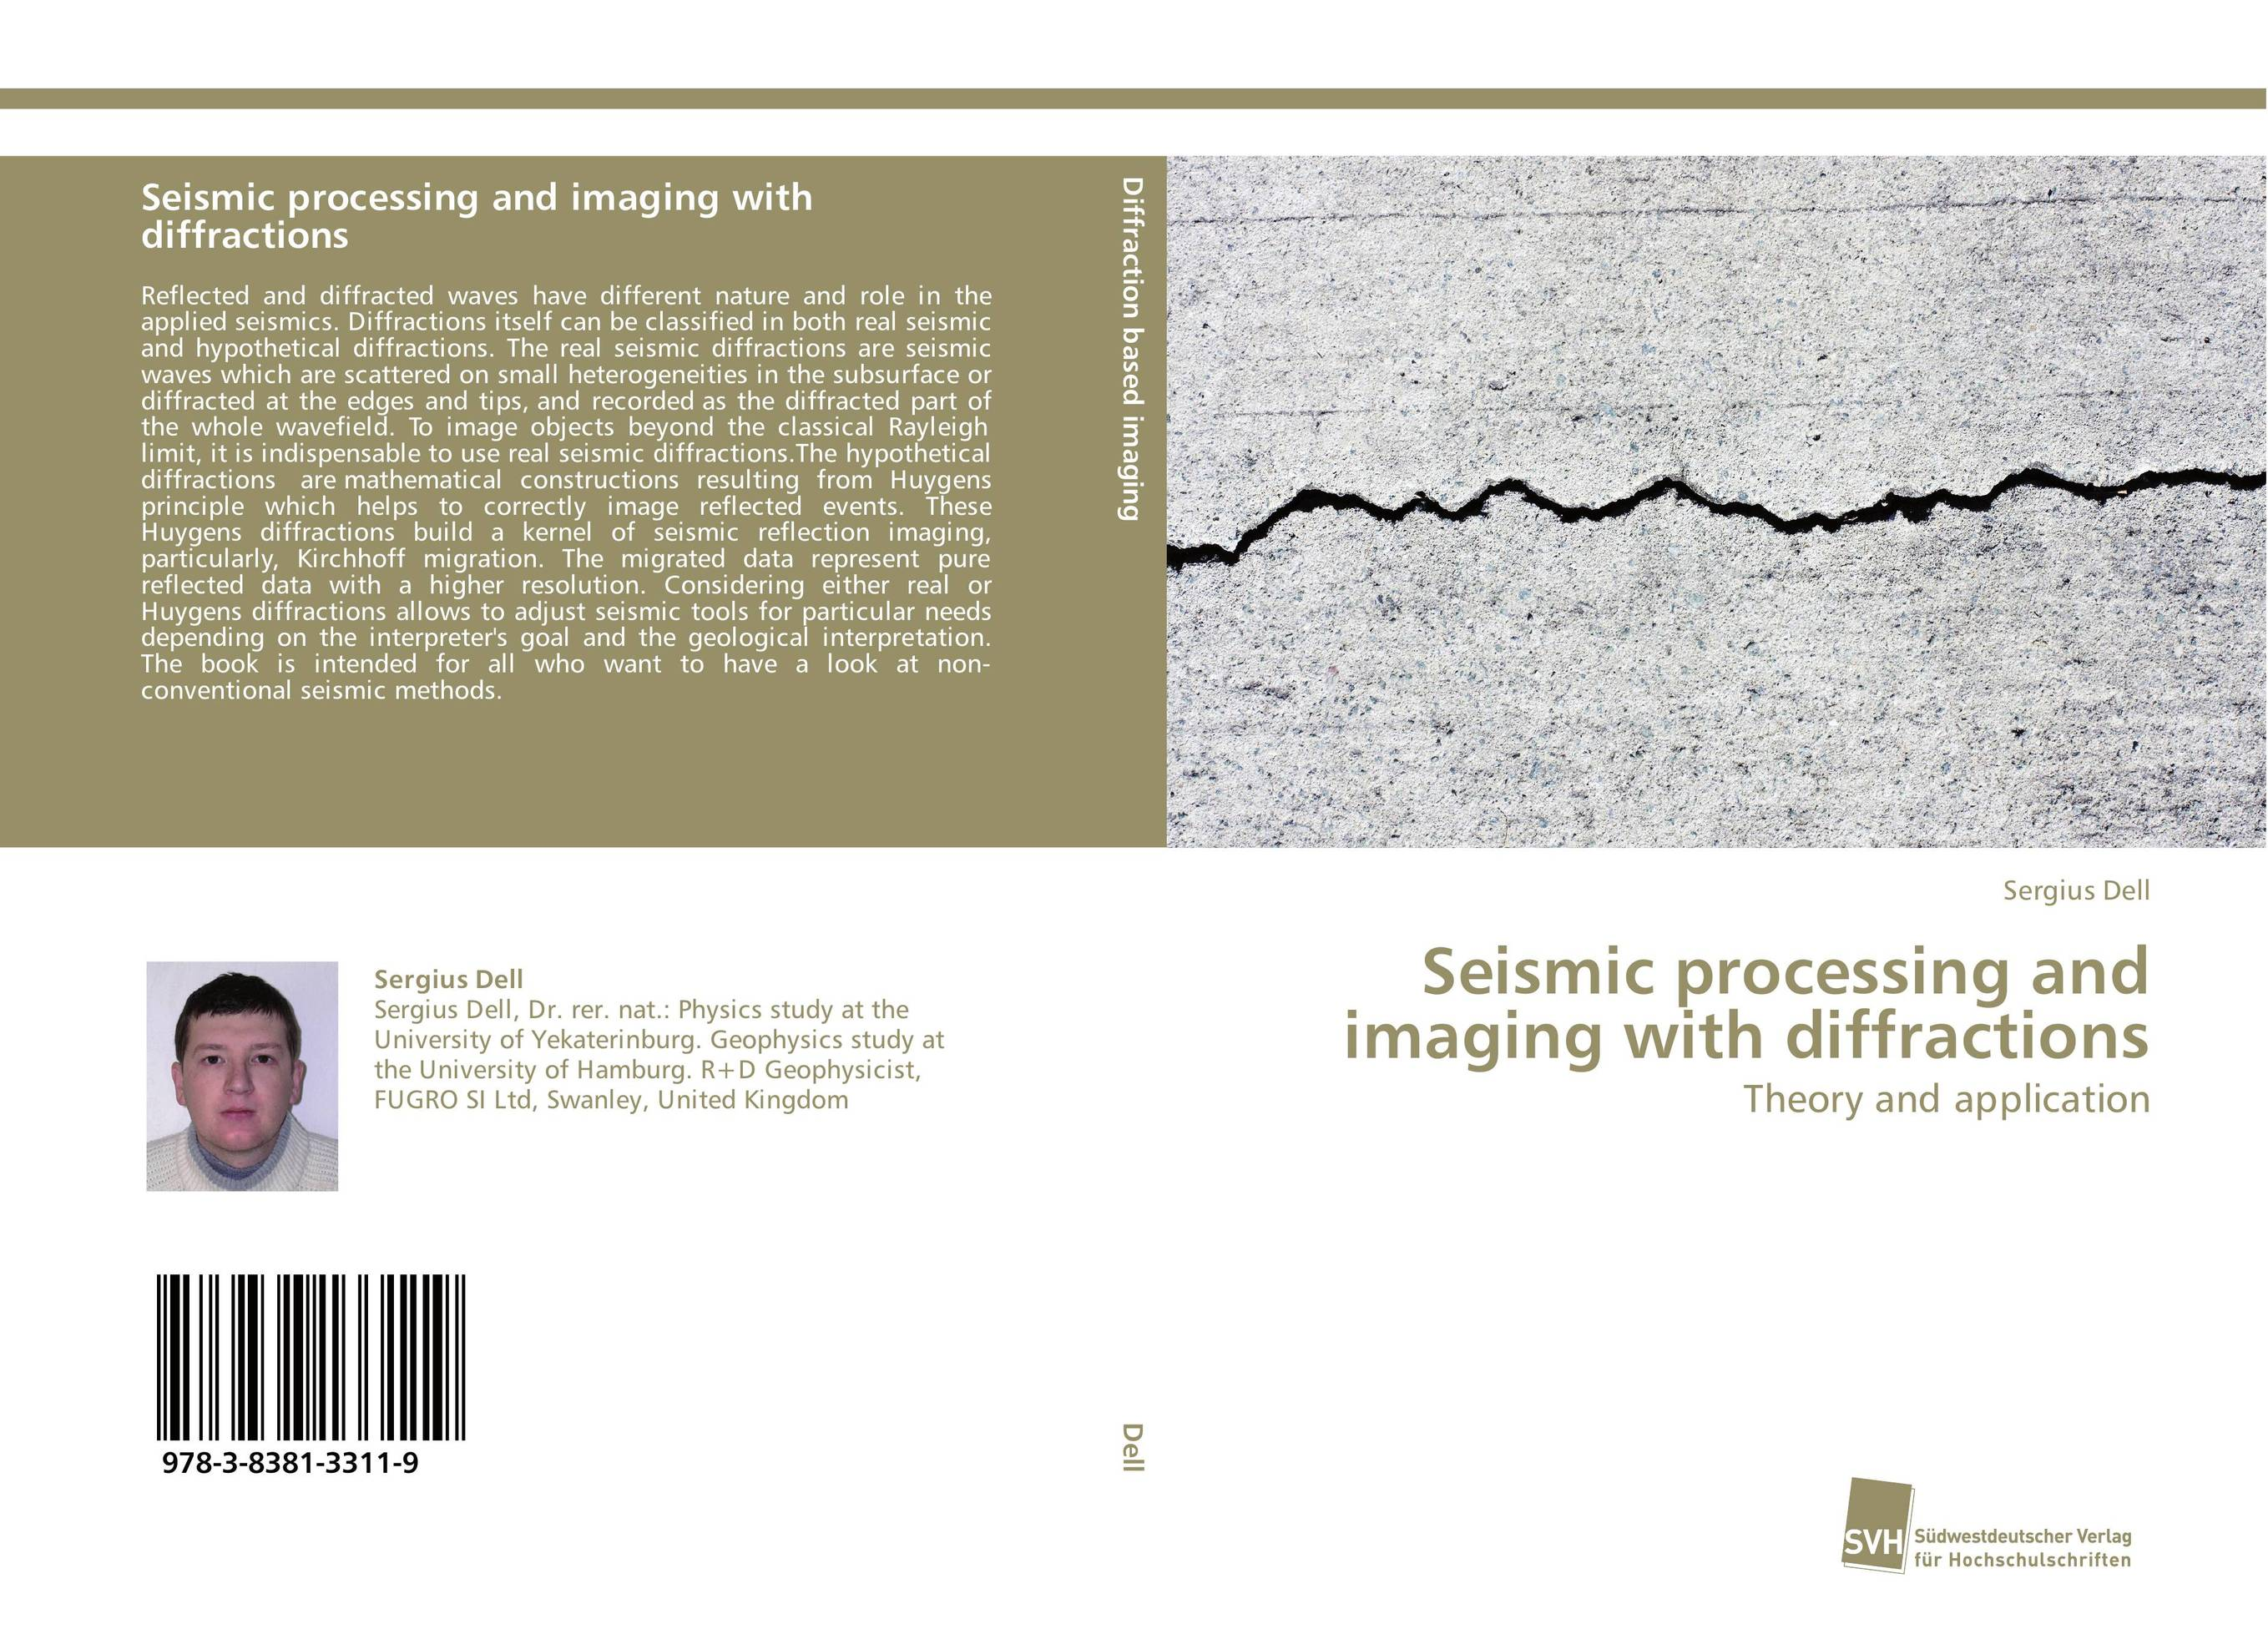 Seismic processing and imaging with diffractions